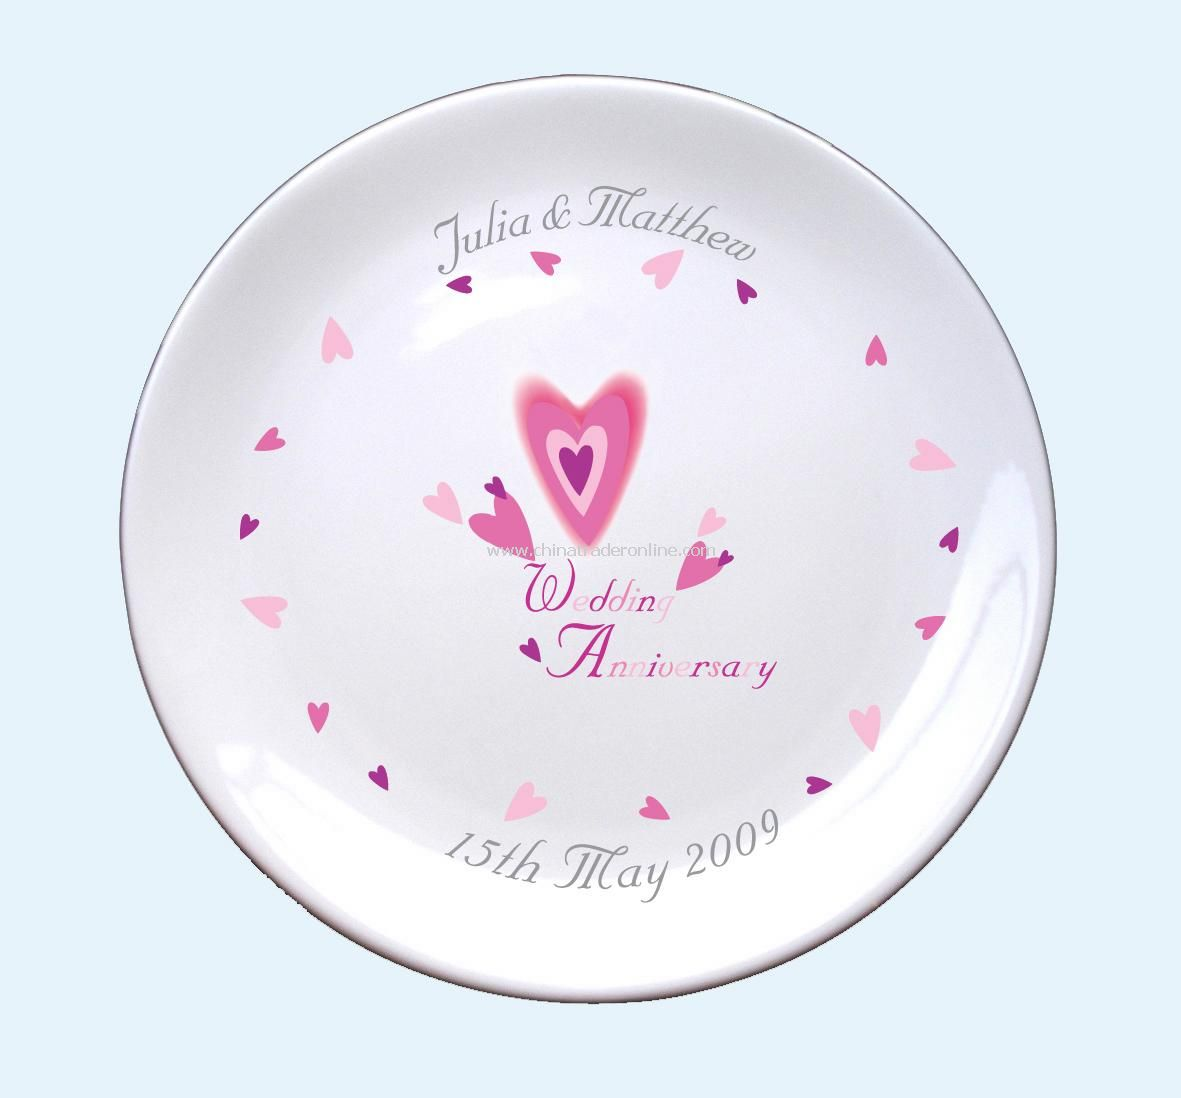 Engagement Plate from China